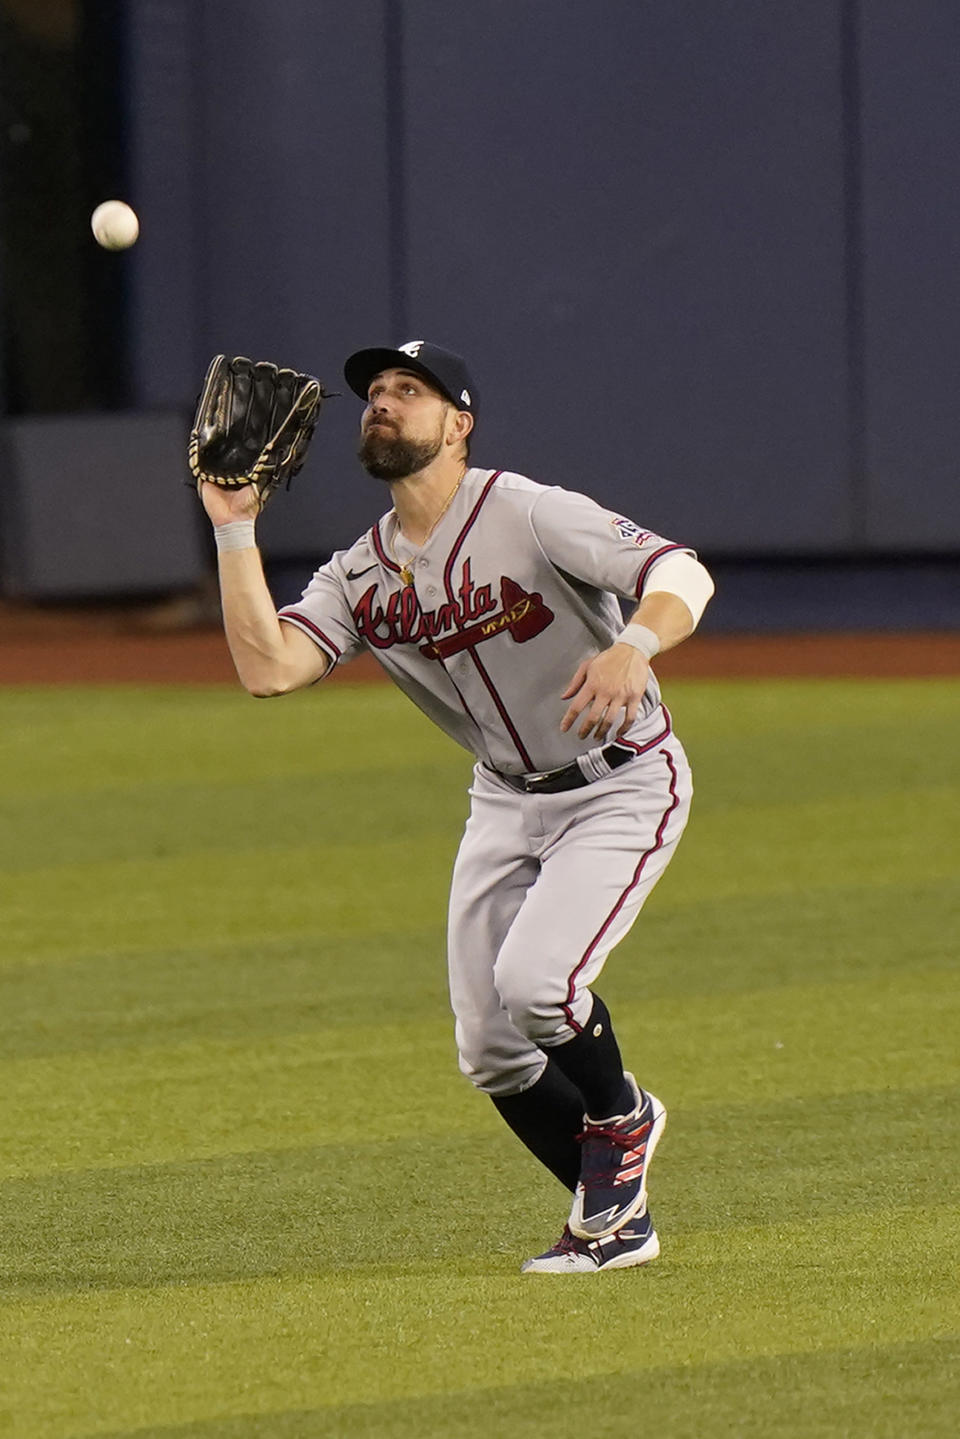 Atlanta Braves center fielder Ender Inciarte catches a sacrifice fly hit by Miami Marlins' Jesus Aguilar that scored Jazz Chisholm Jr. during the first inning of a baseball game, Saturday, June 12, 2021, in Miami. (AP Photo/Wilfredo Lee)